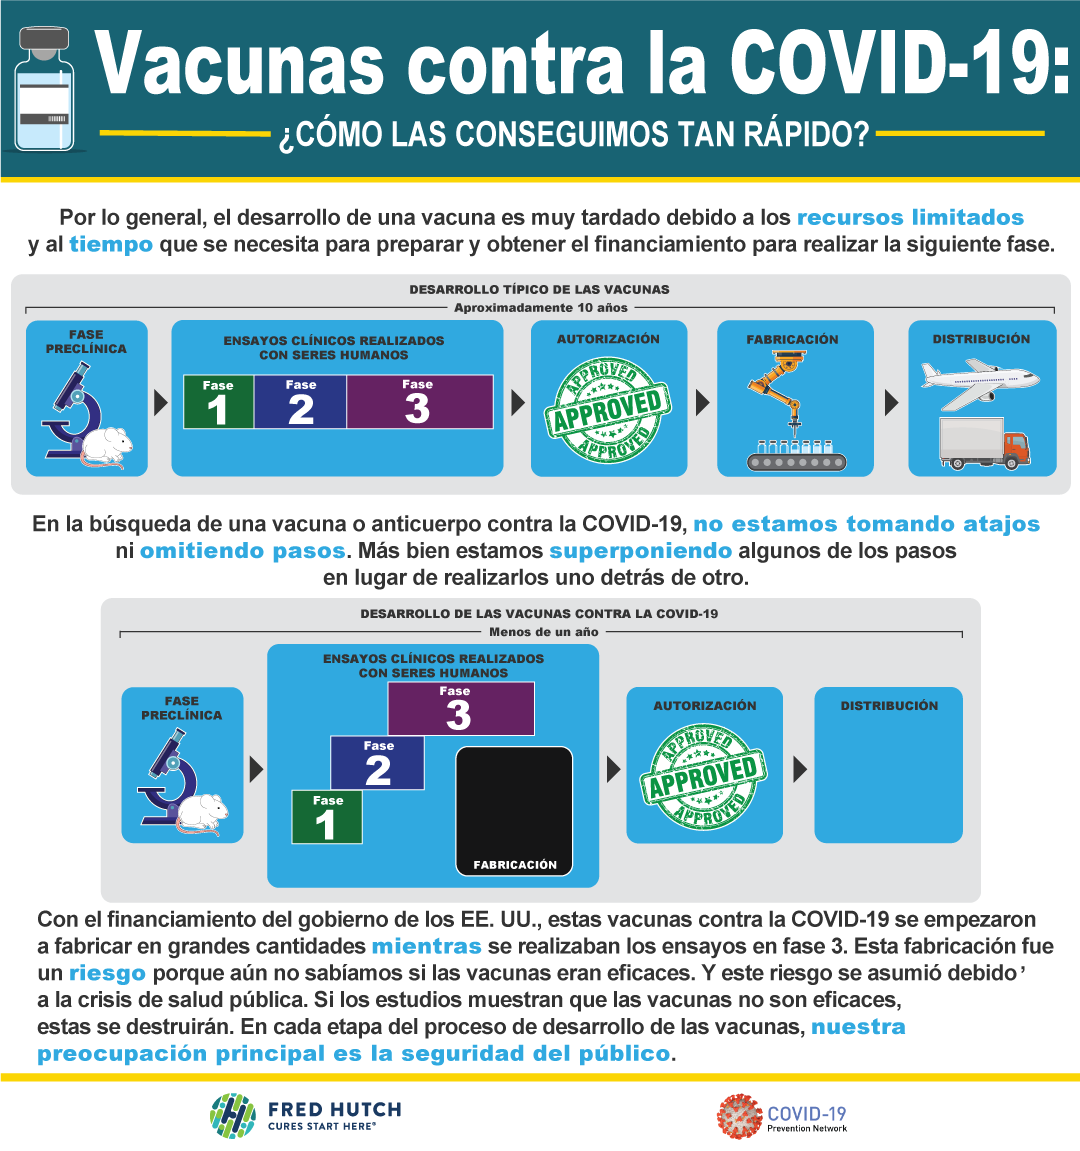 Covid-19 vaccine safety procedures